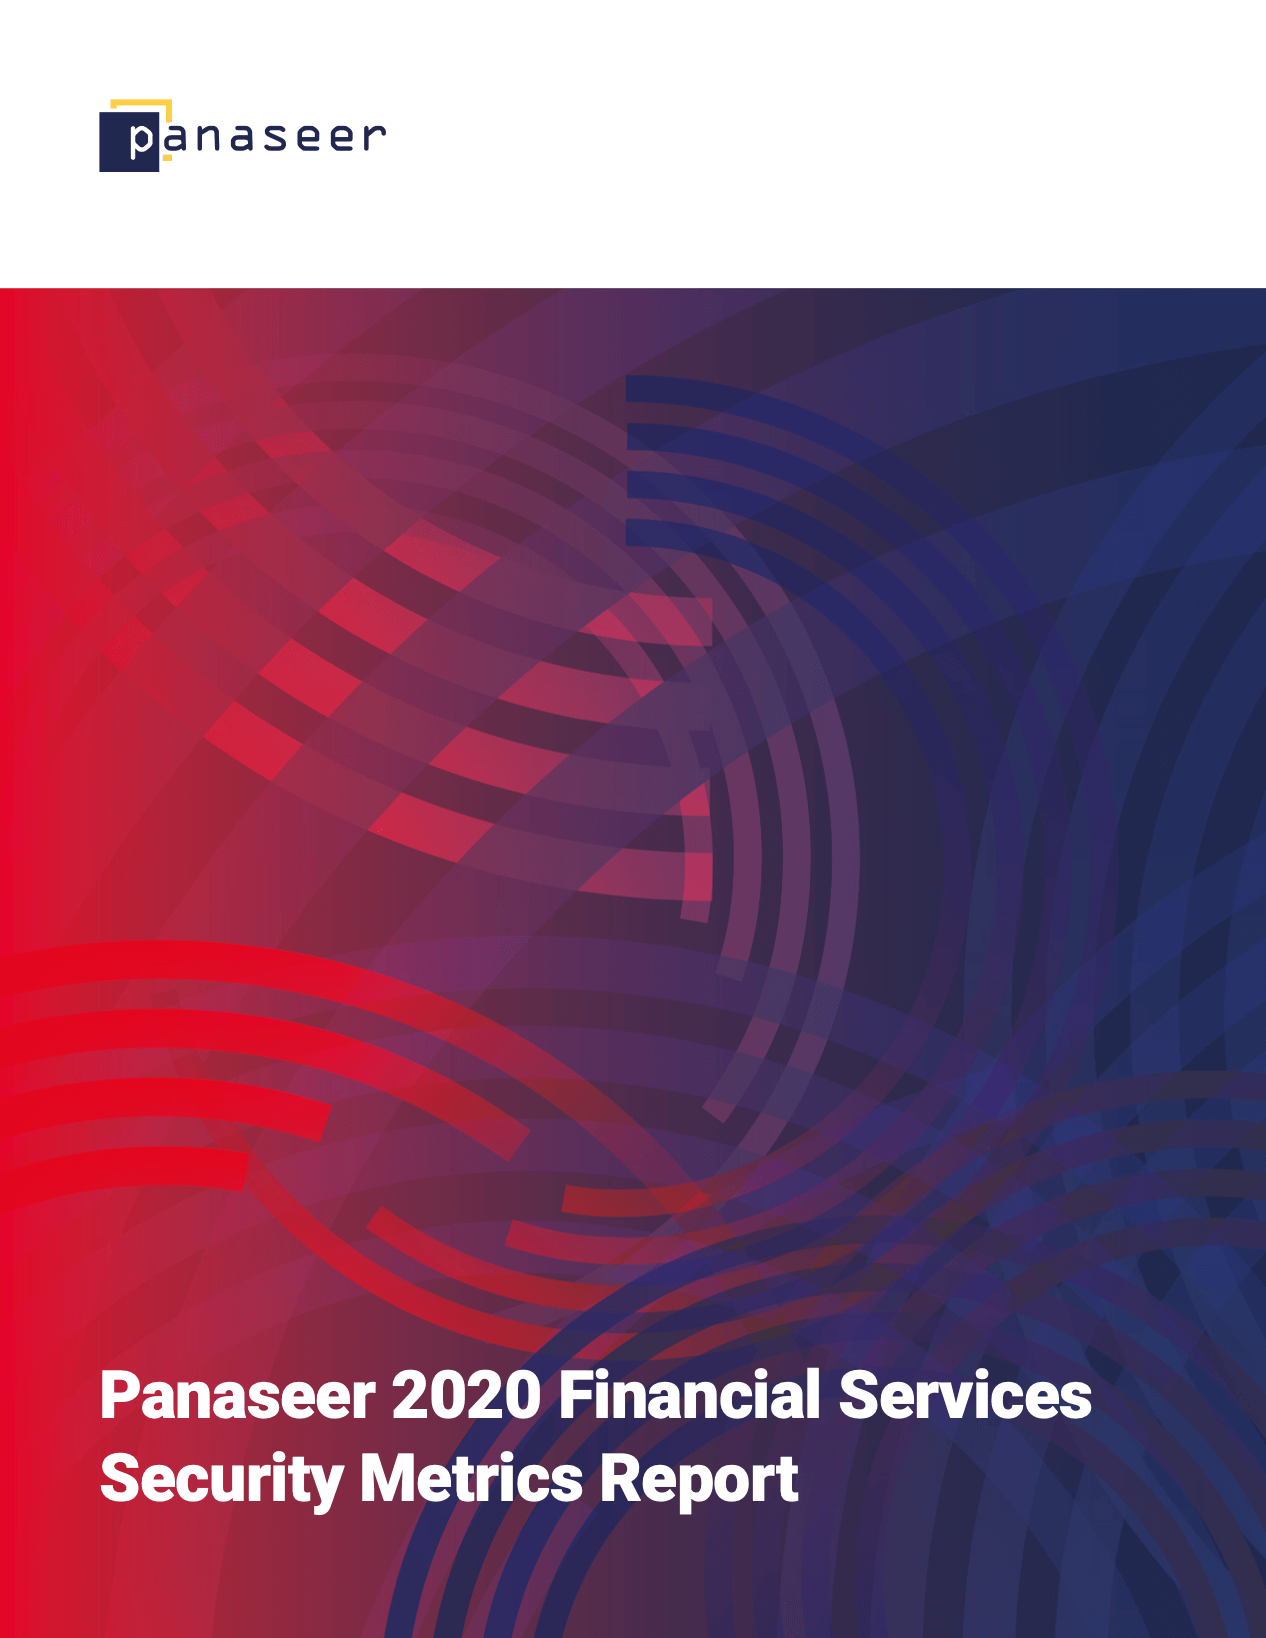 Panaseer's 2020 Financial Services Security Metrics Report